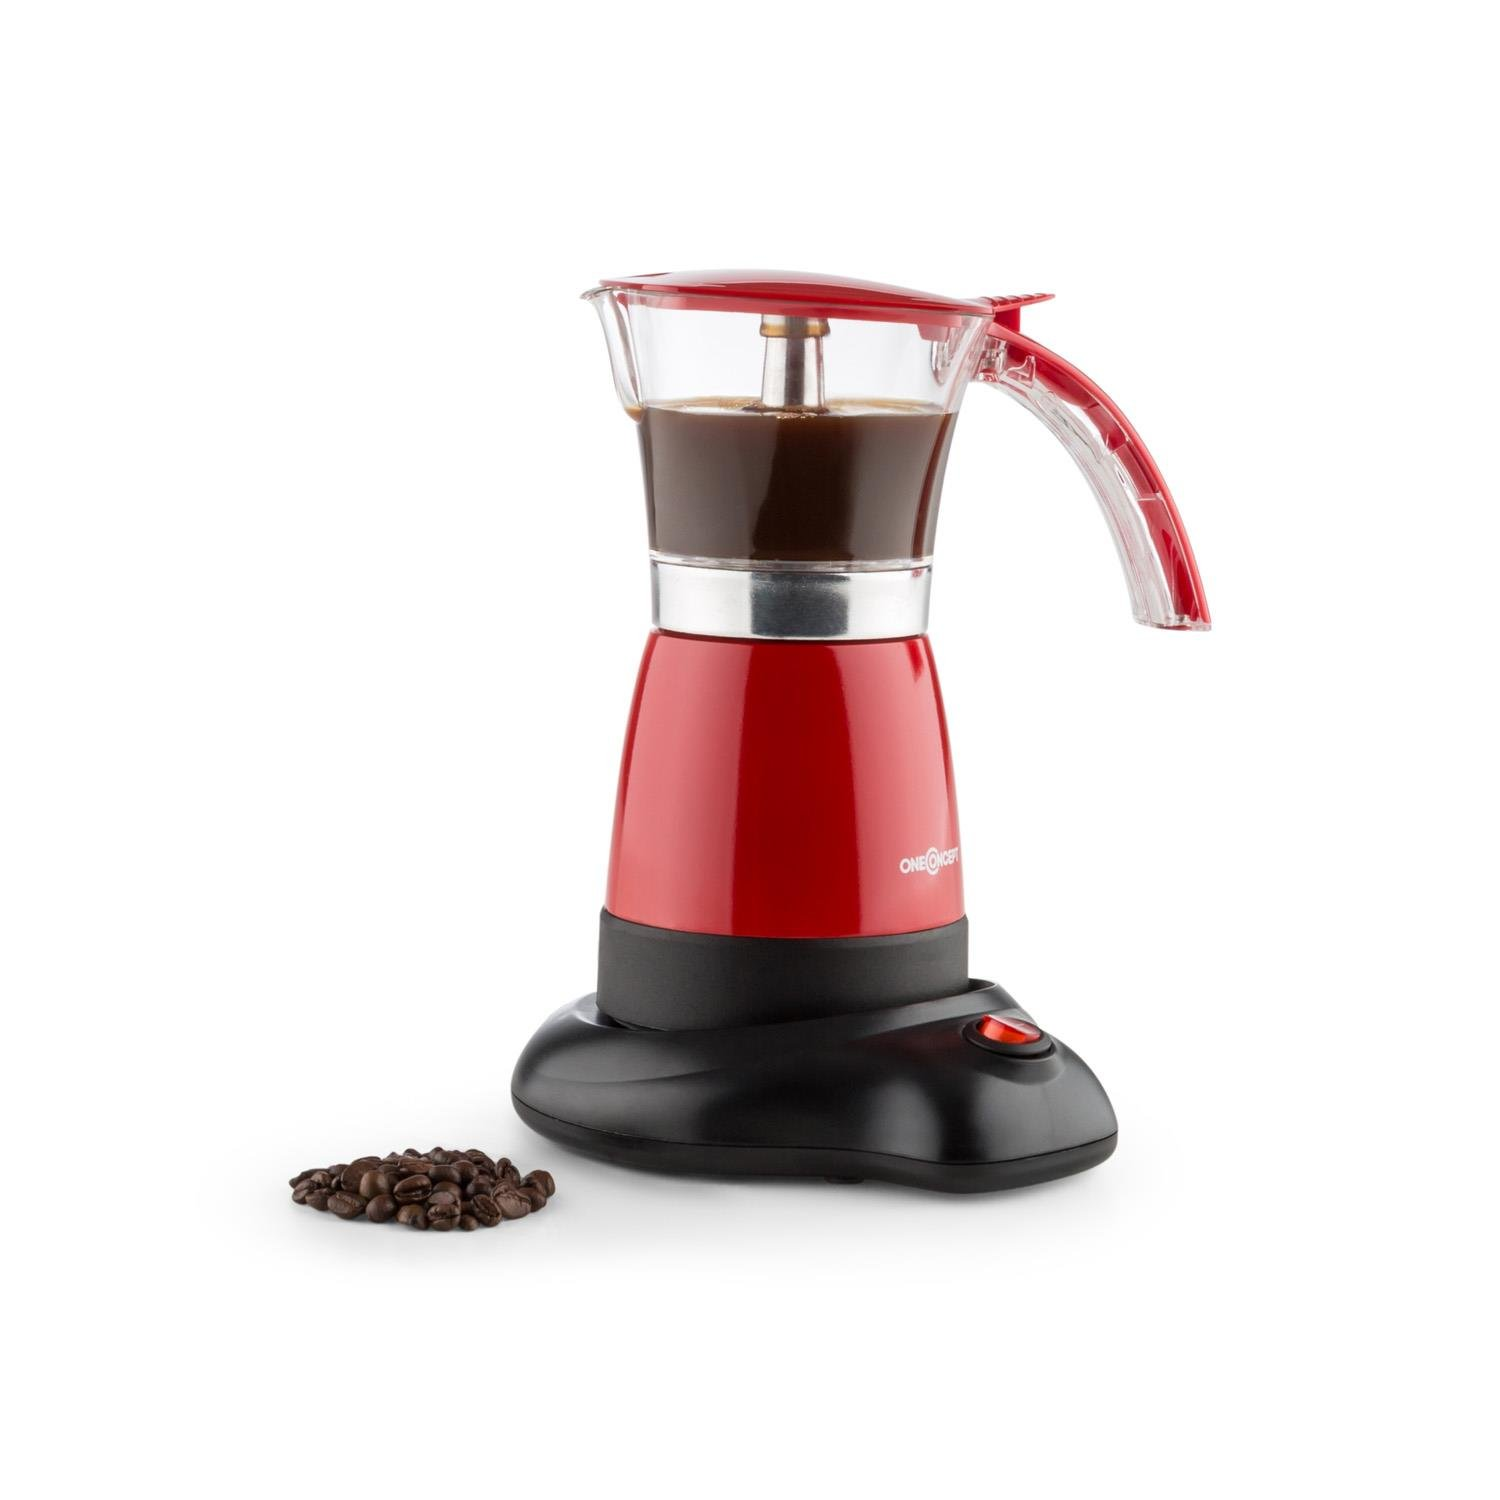 oneConcept Funpresso Espresso Maker • Coffee Machine • Electric • 6 Cups • 300 ml • 480W • Wireless Operating Comfort • Cool-Touch Handle • Safety Valve • No Burning Hazard • Easy Cleaning with Water • Energy-Efficient • Electrical Base Station • Red